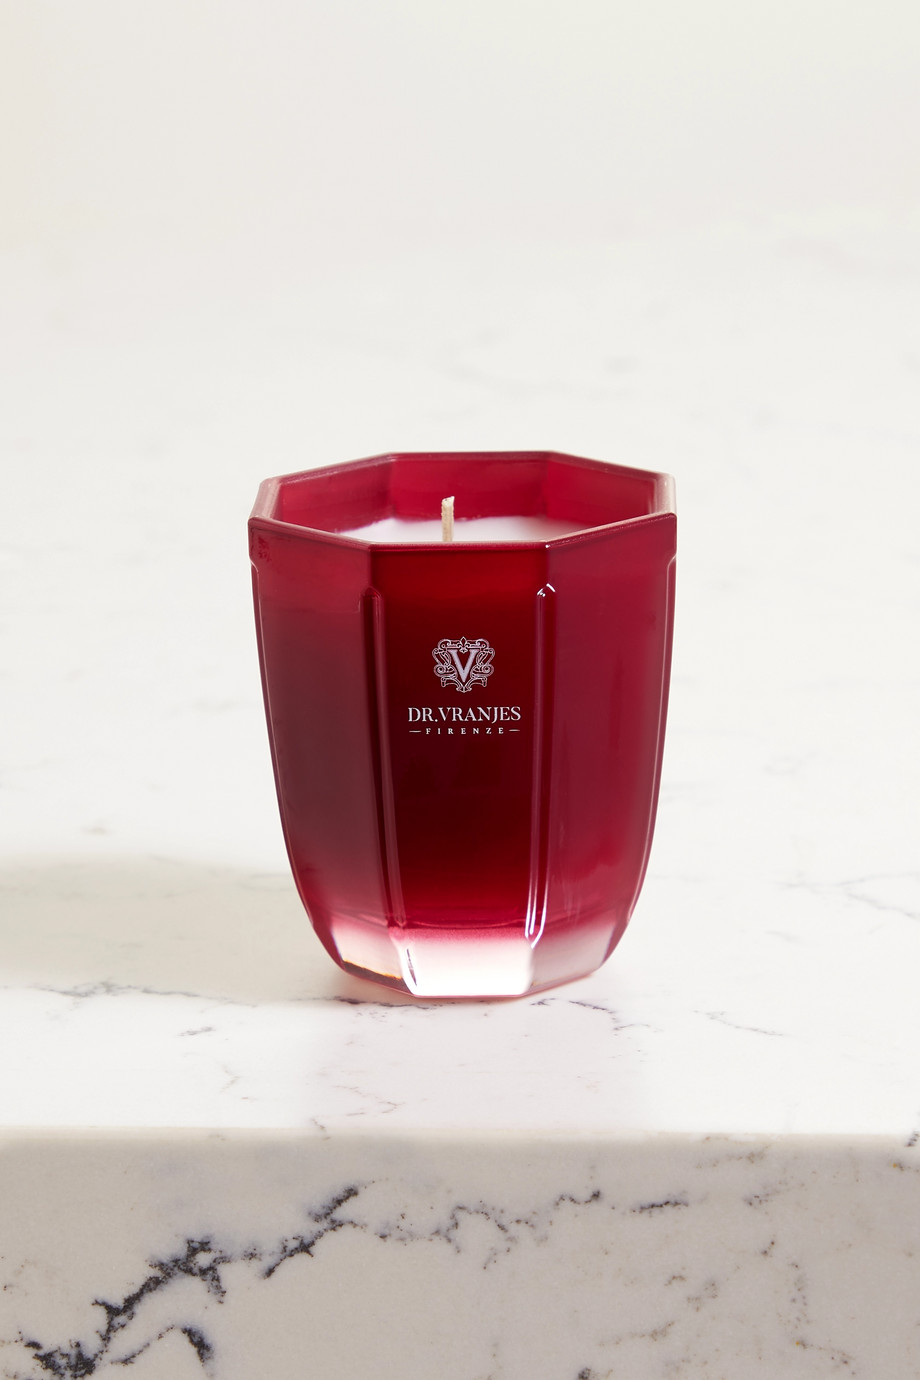 Dr. Vranjes Firenze Rosso Nobile scented candle, 80 g